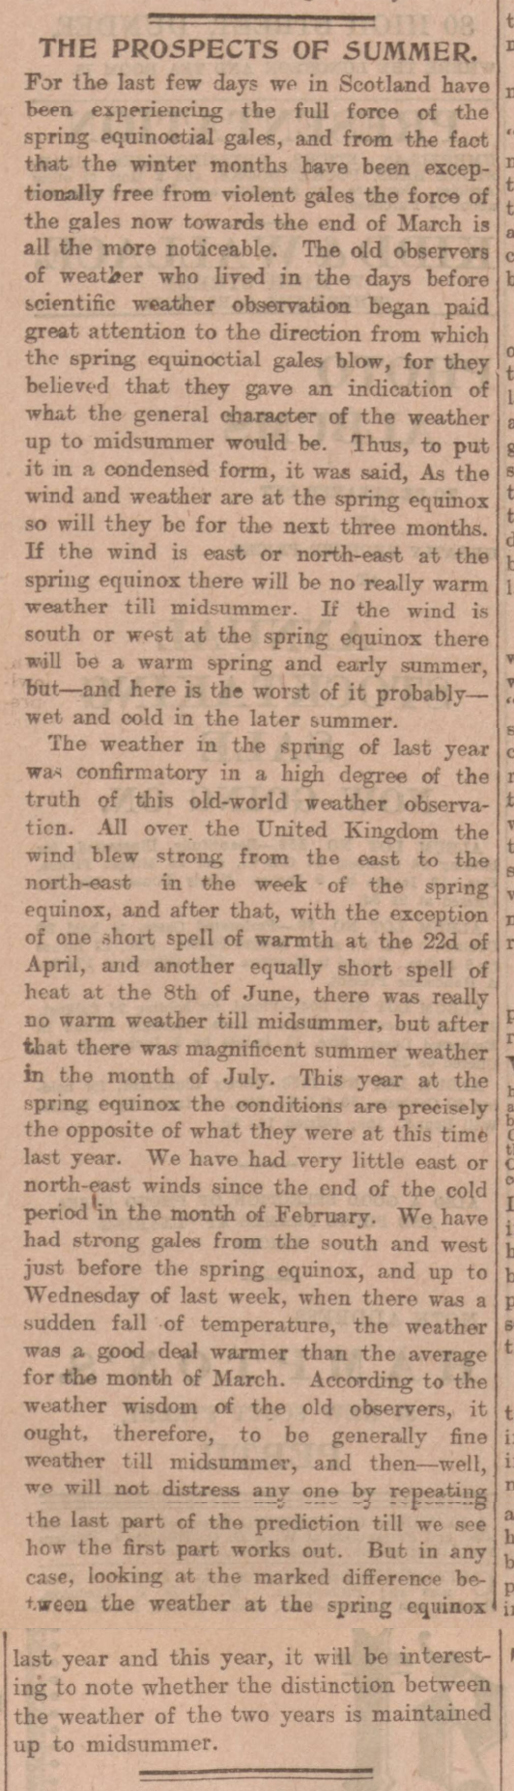 newspaper report on the spring equinox